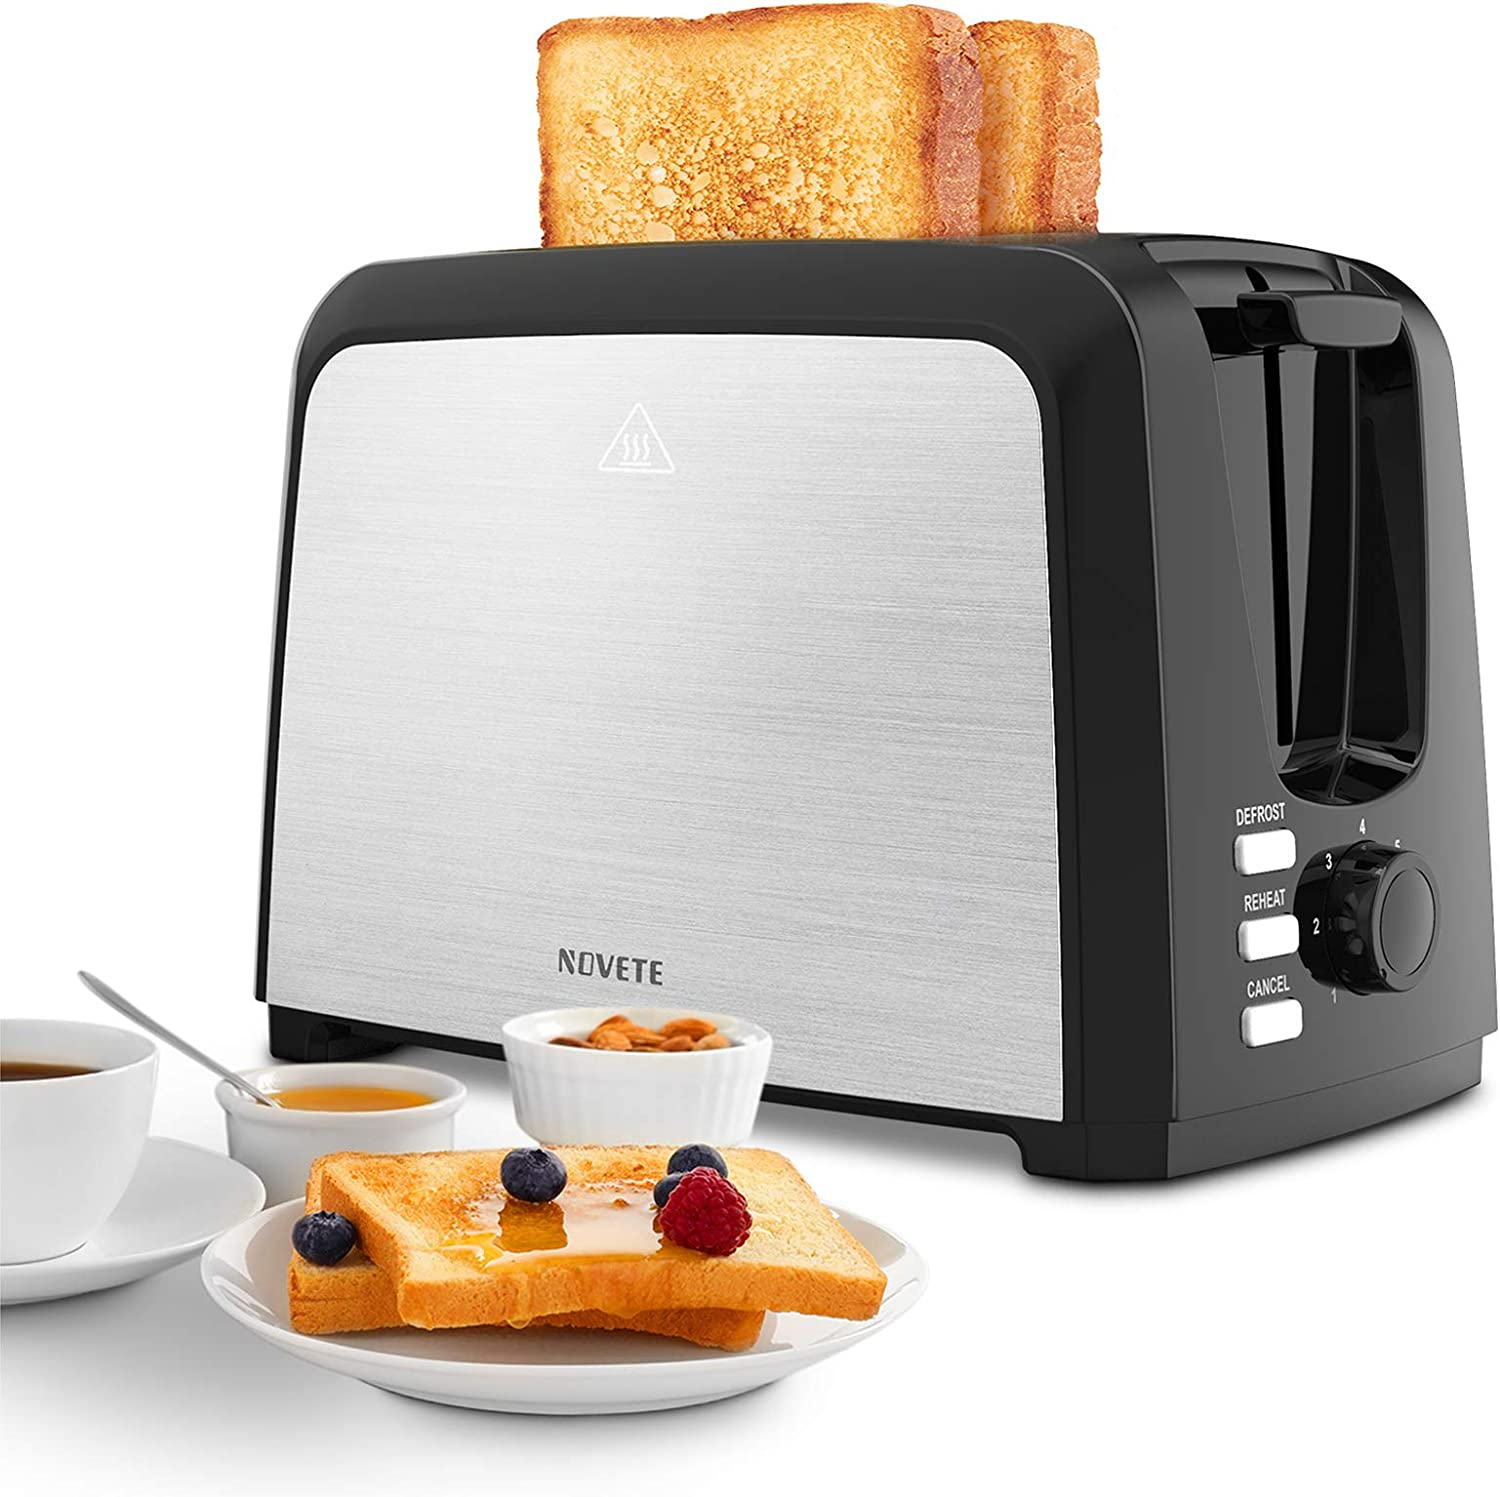 Toaster 2 Slice Best Rated Prime, NOVETE Wide Slot Toaster with 7 Bread Shade Settings & Removable Crumb Tray, UL Certified Quality, Compact Stainless Steel Toaster, Ideal Gift for Family & Friends, 750W